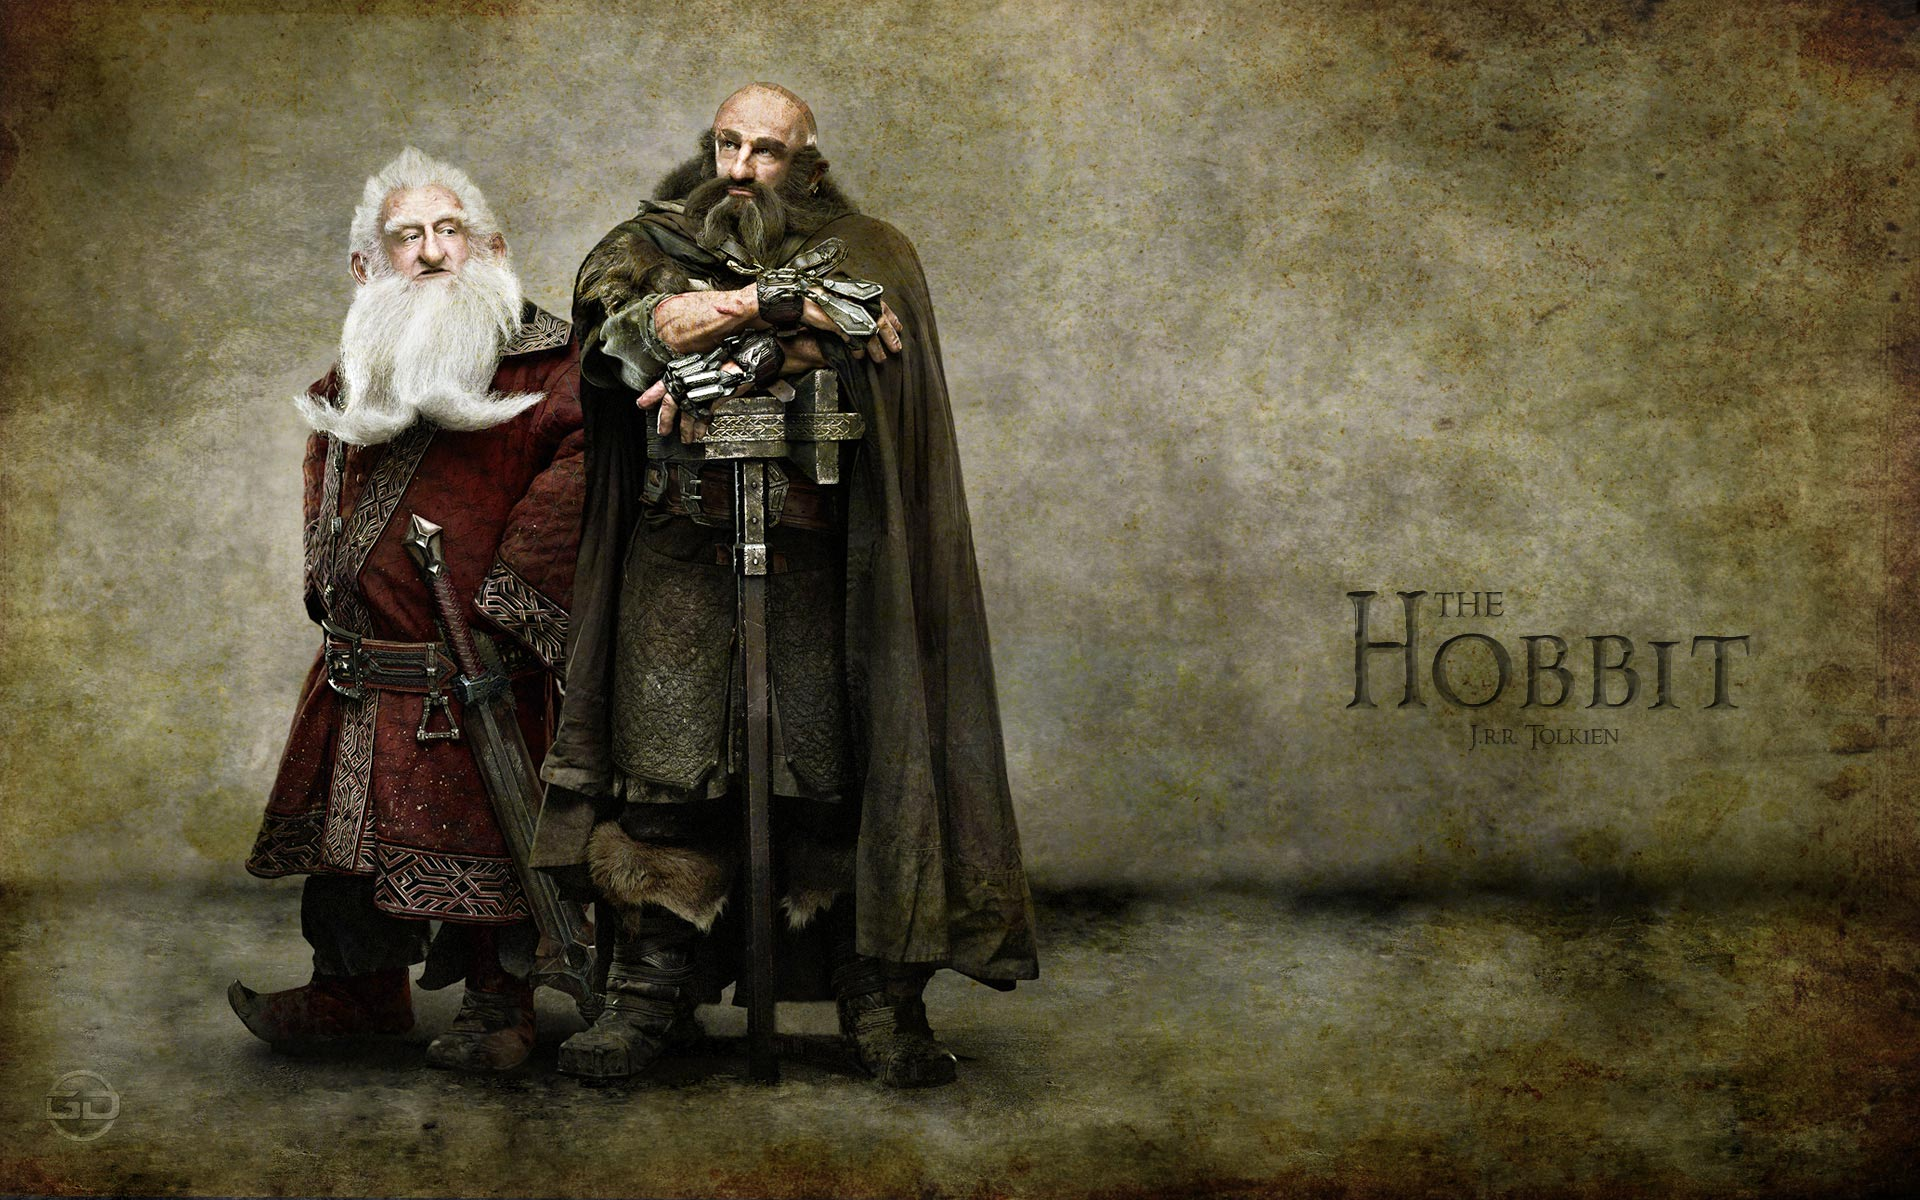 The Hobbit Movie Wallpapers Awesome Wallpapers 1920x1200